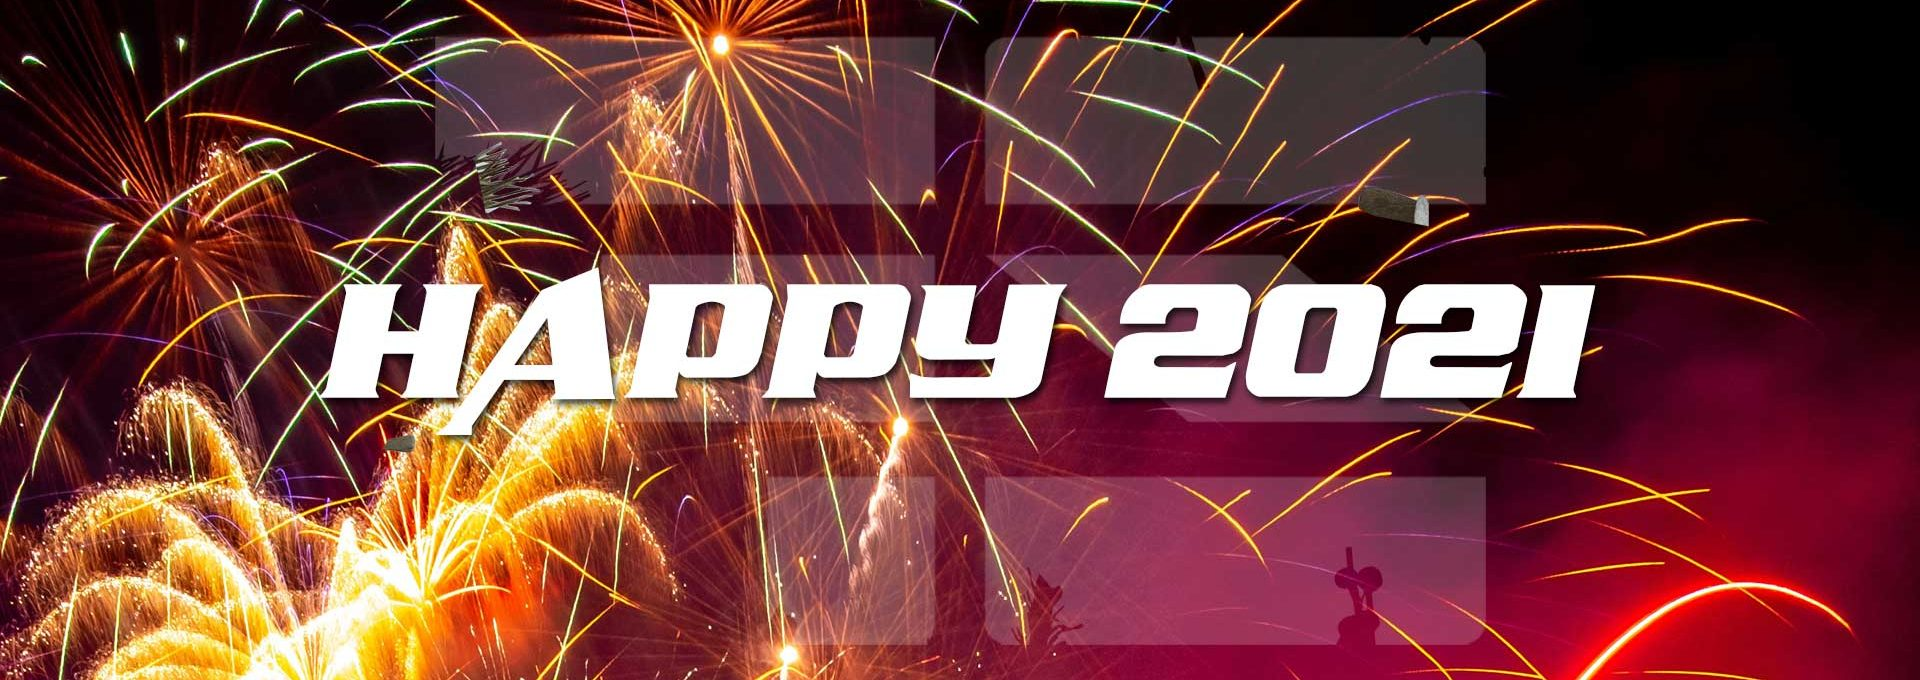 FoS: HAPPY NEW YEAR 2021 AND REVIEW OF THE YEAR 2020